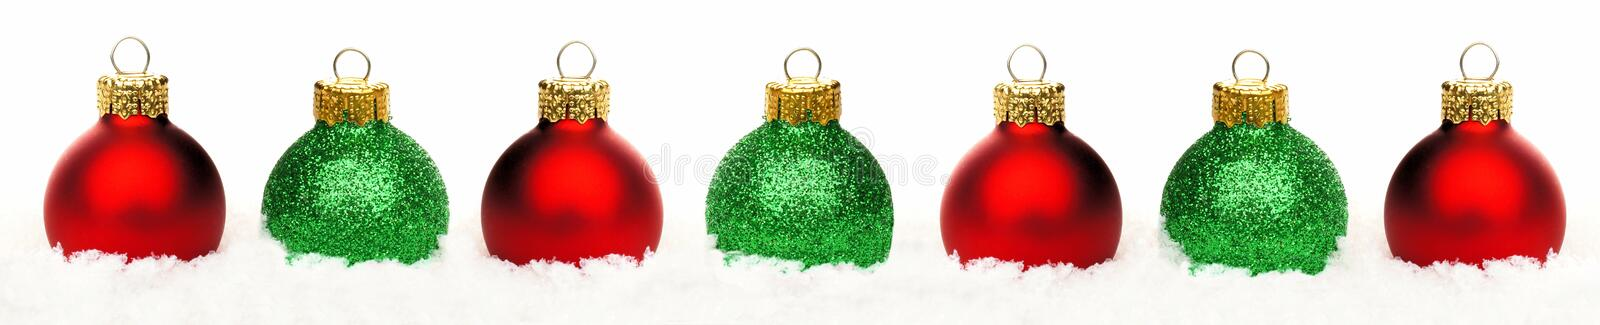 Christmas border of red and green baubles in snow isolated royalty free stock photos